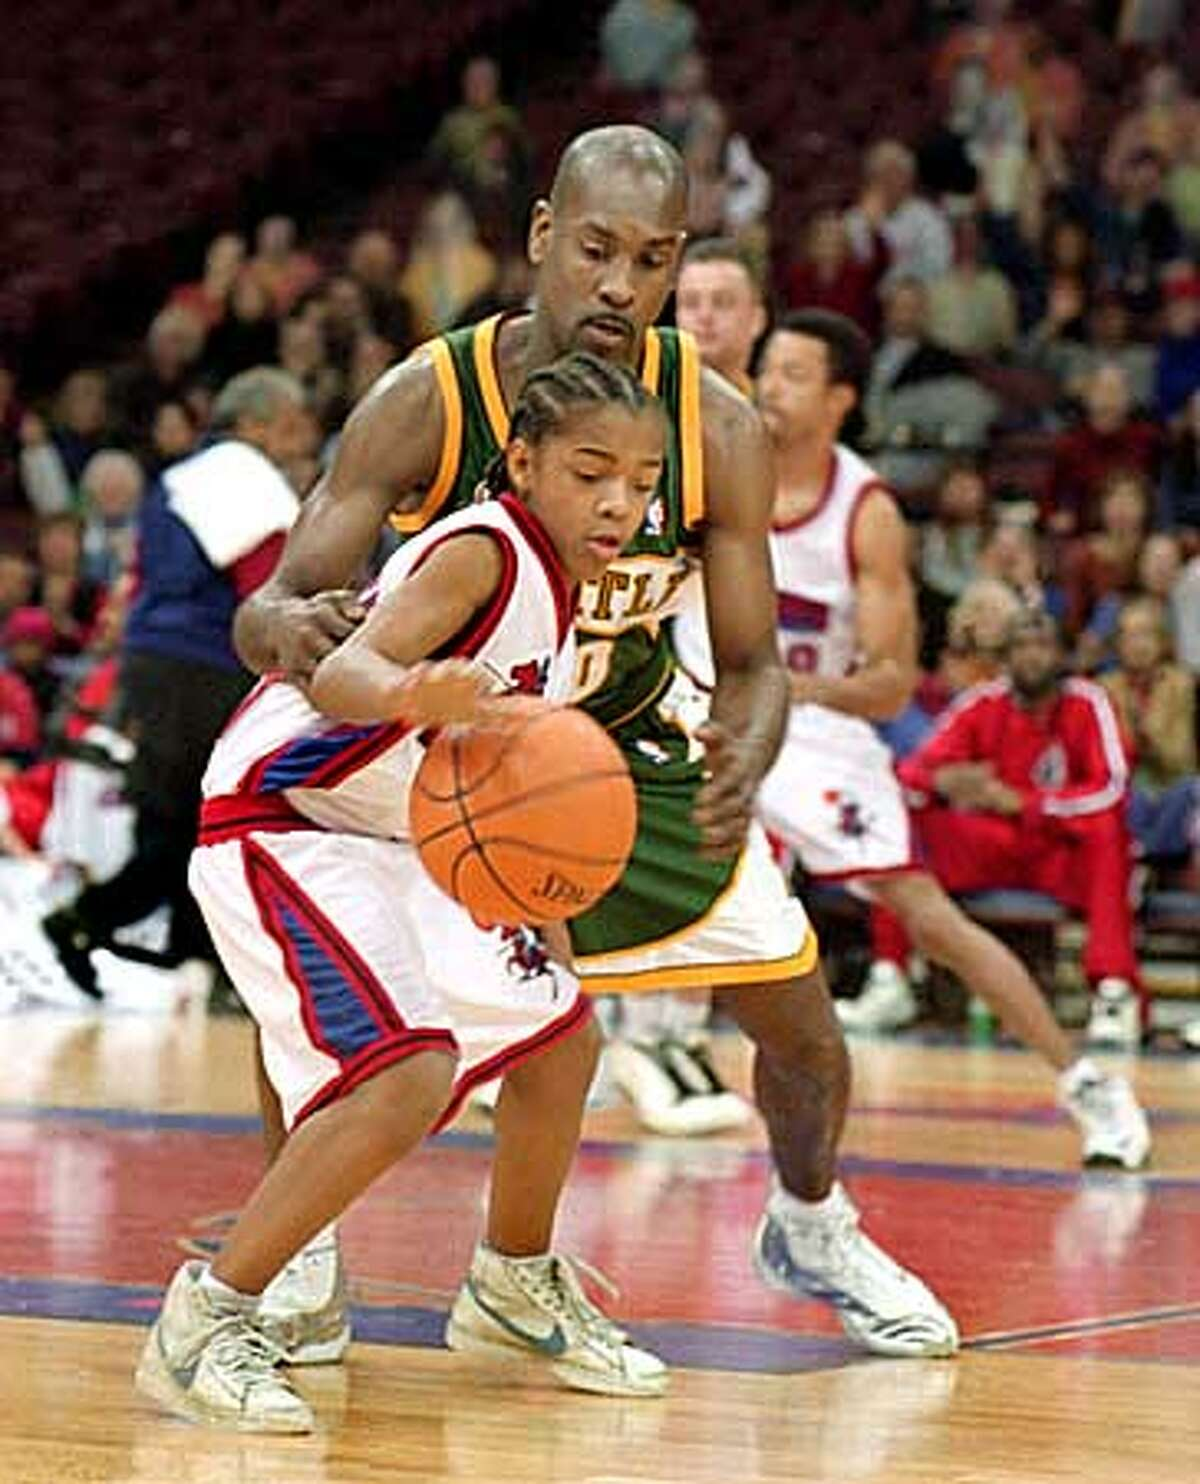 Calvin (Lil' Bow Wow) goes up against a real NBA star, Seattle's Gary Payton, in